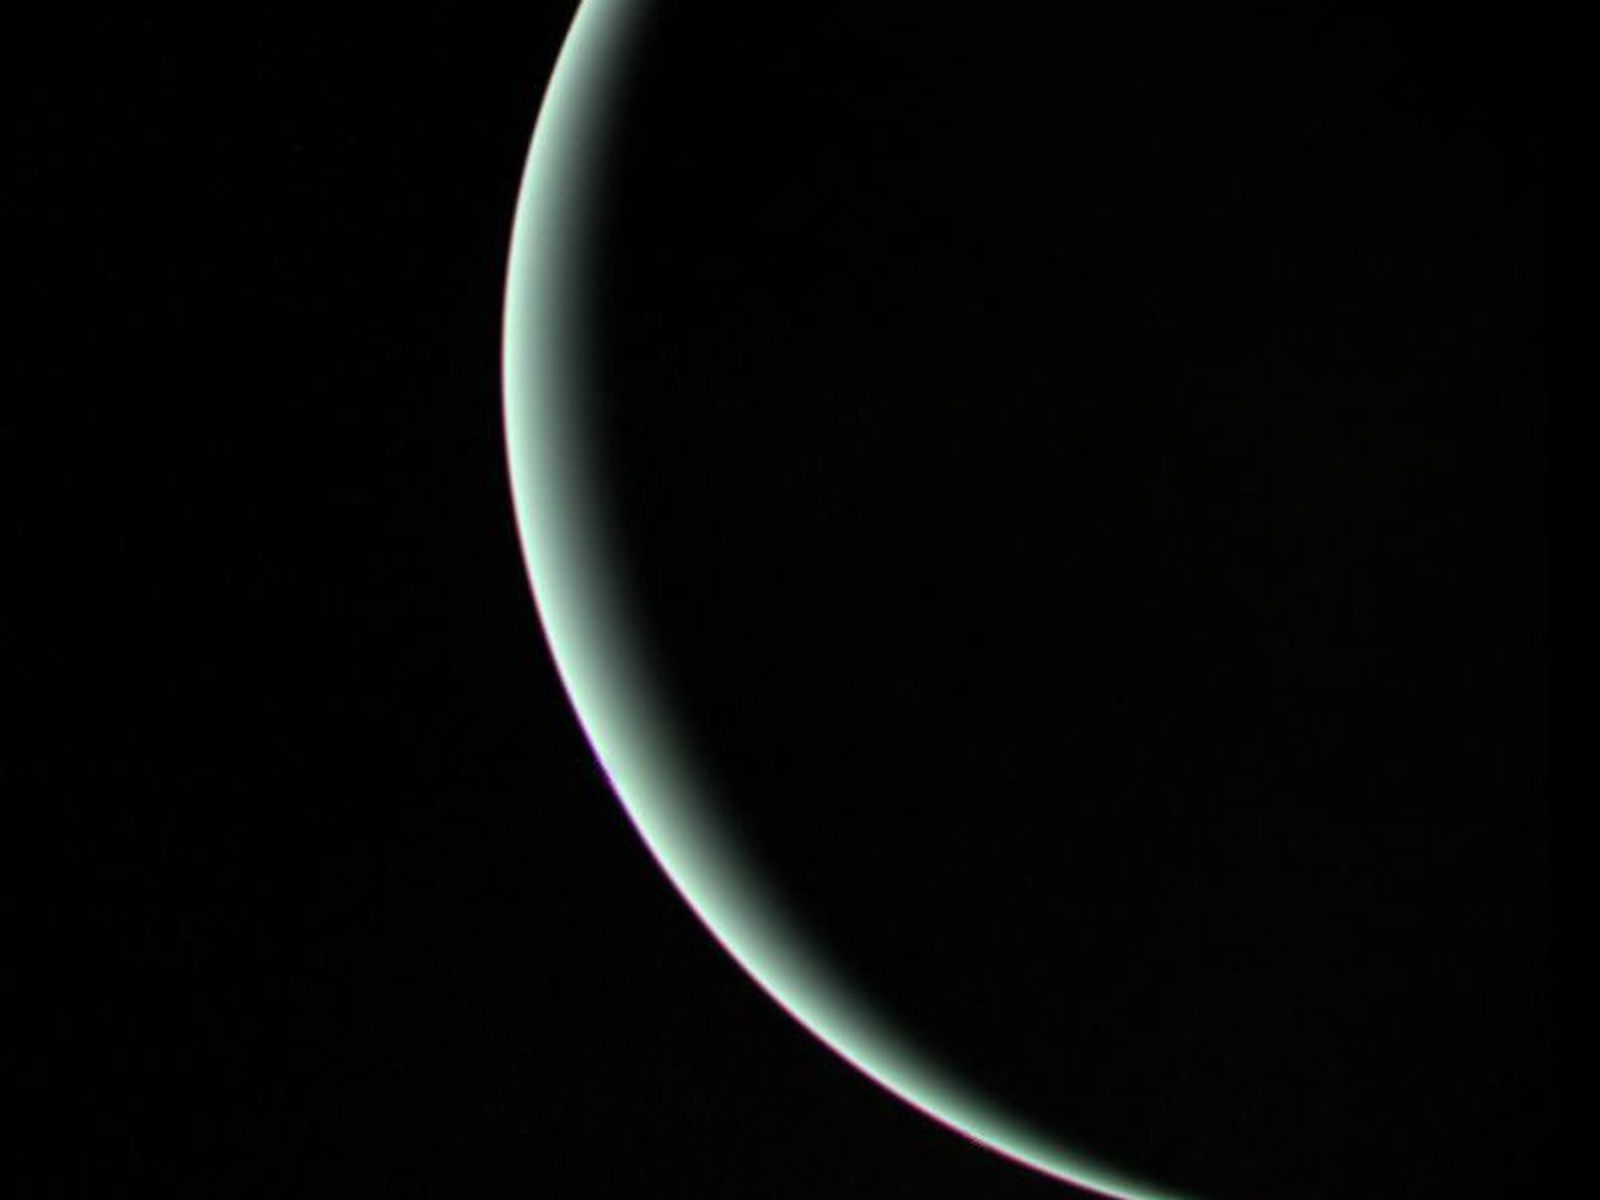 Space images uranus final image wallpaper biocorpaavc Gallery